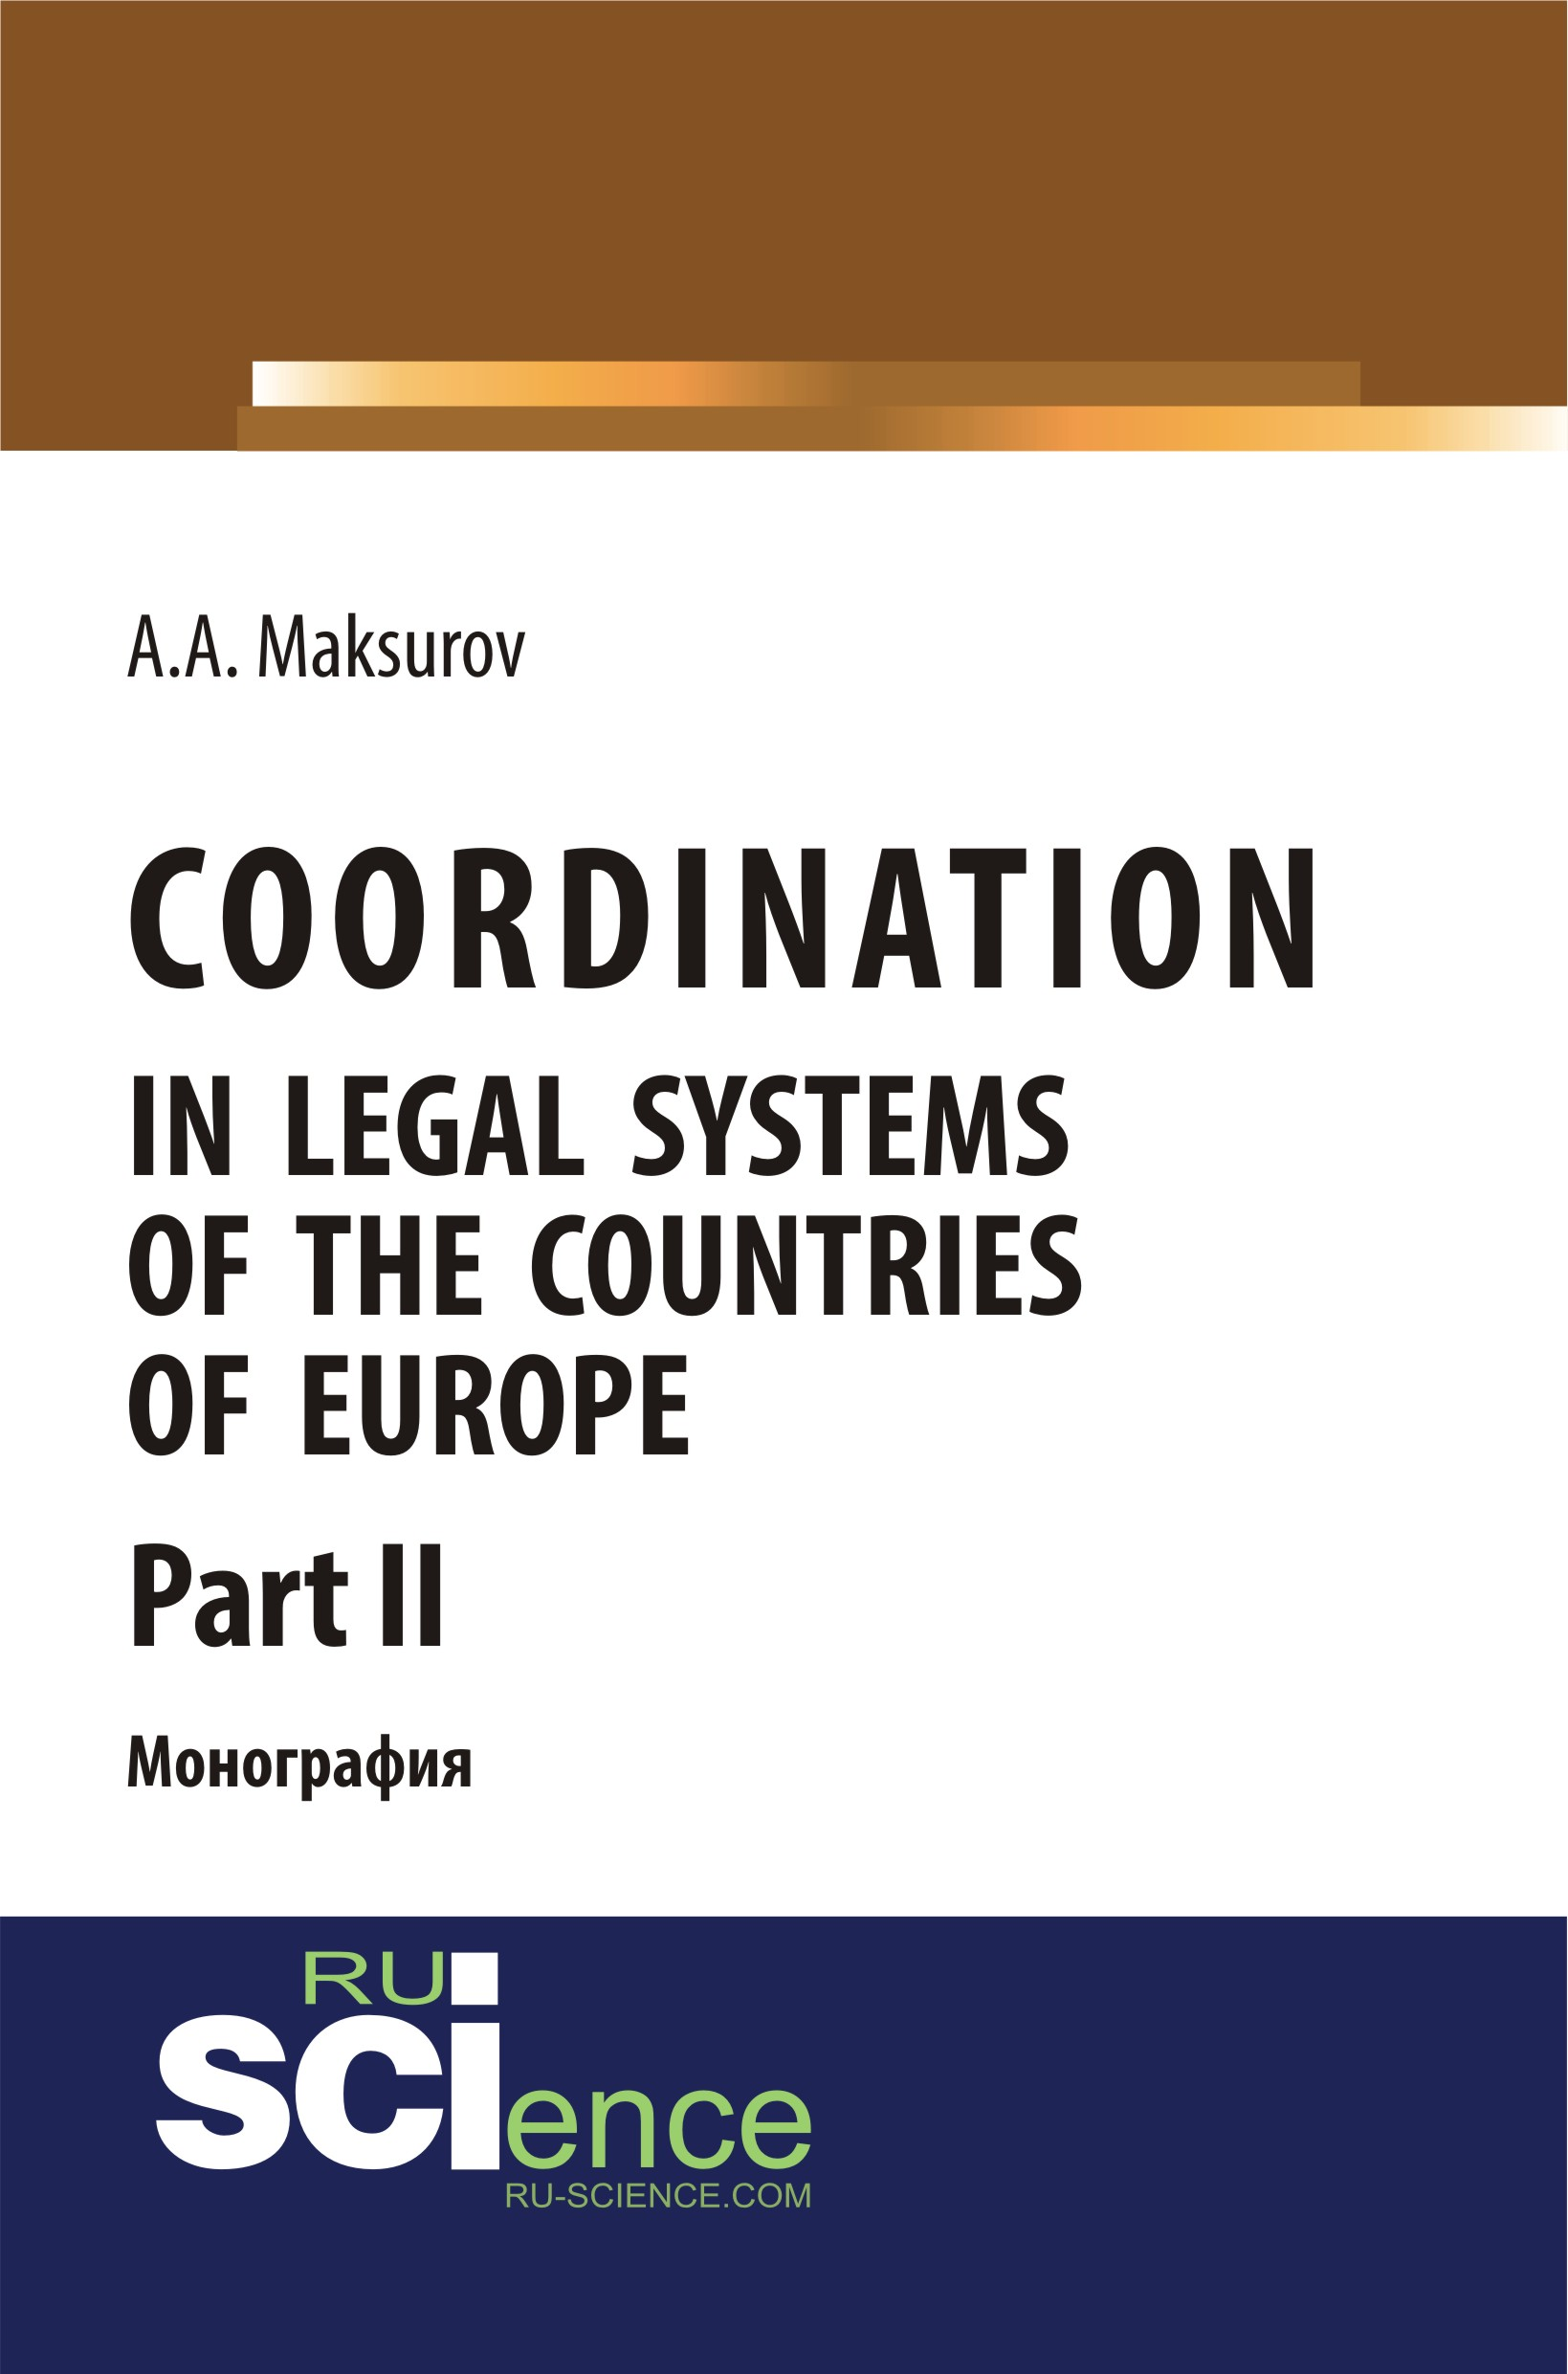 А. А. Максуров Coordination in legal systems of the countries of Europe. Part II gasquet francis aidan the eve of the reformation